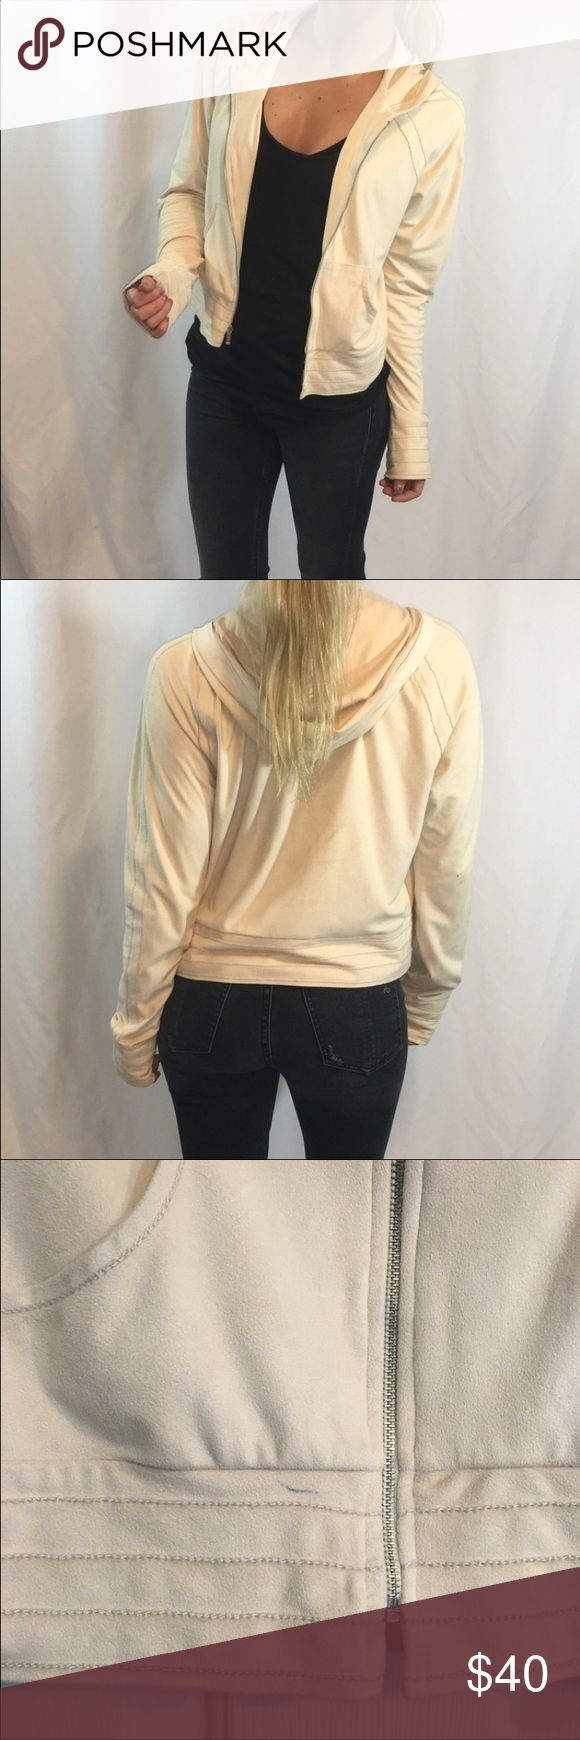 Cream Super Soft Suede Bebe Zip Up Hoodie Super soft suede Bebe zip up hoodie. Cream color. Pen mark on front as shown in photos. Overall good condition. No tags at all. Fits like an XS/S (I'm 5'1, 120 lbs for reference). Such a cute piece! bebe Sweaters